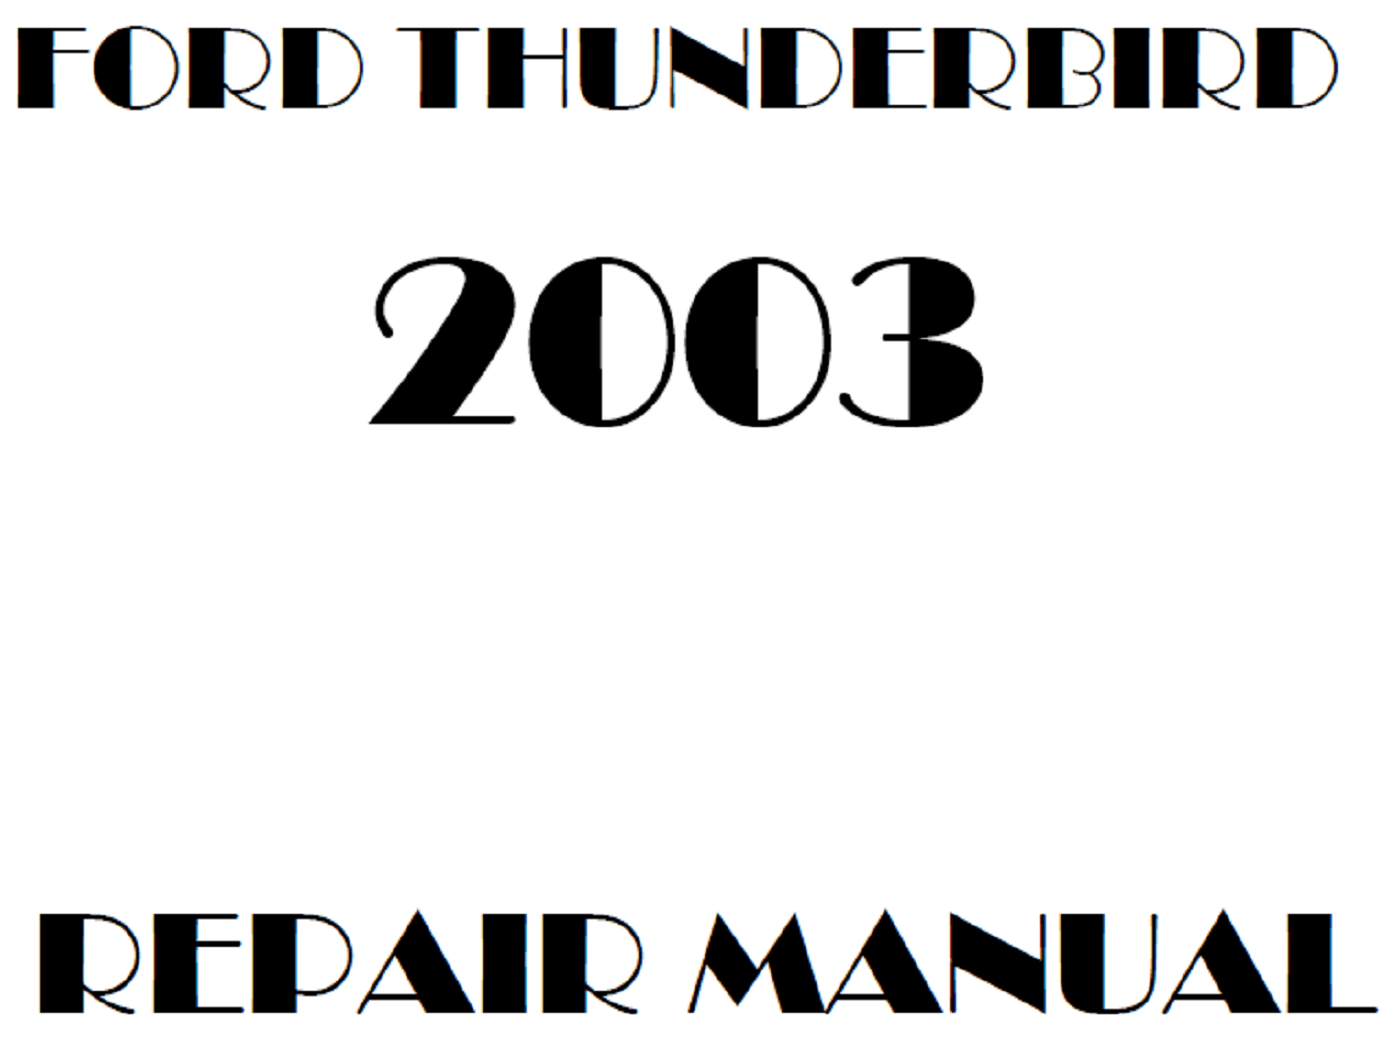 2003 Ford Thunderbird repair manual